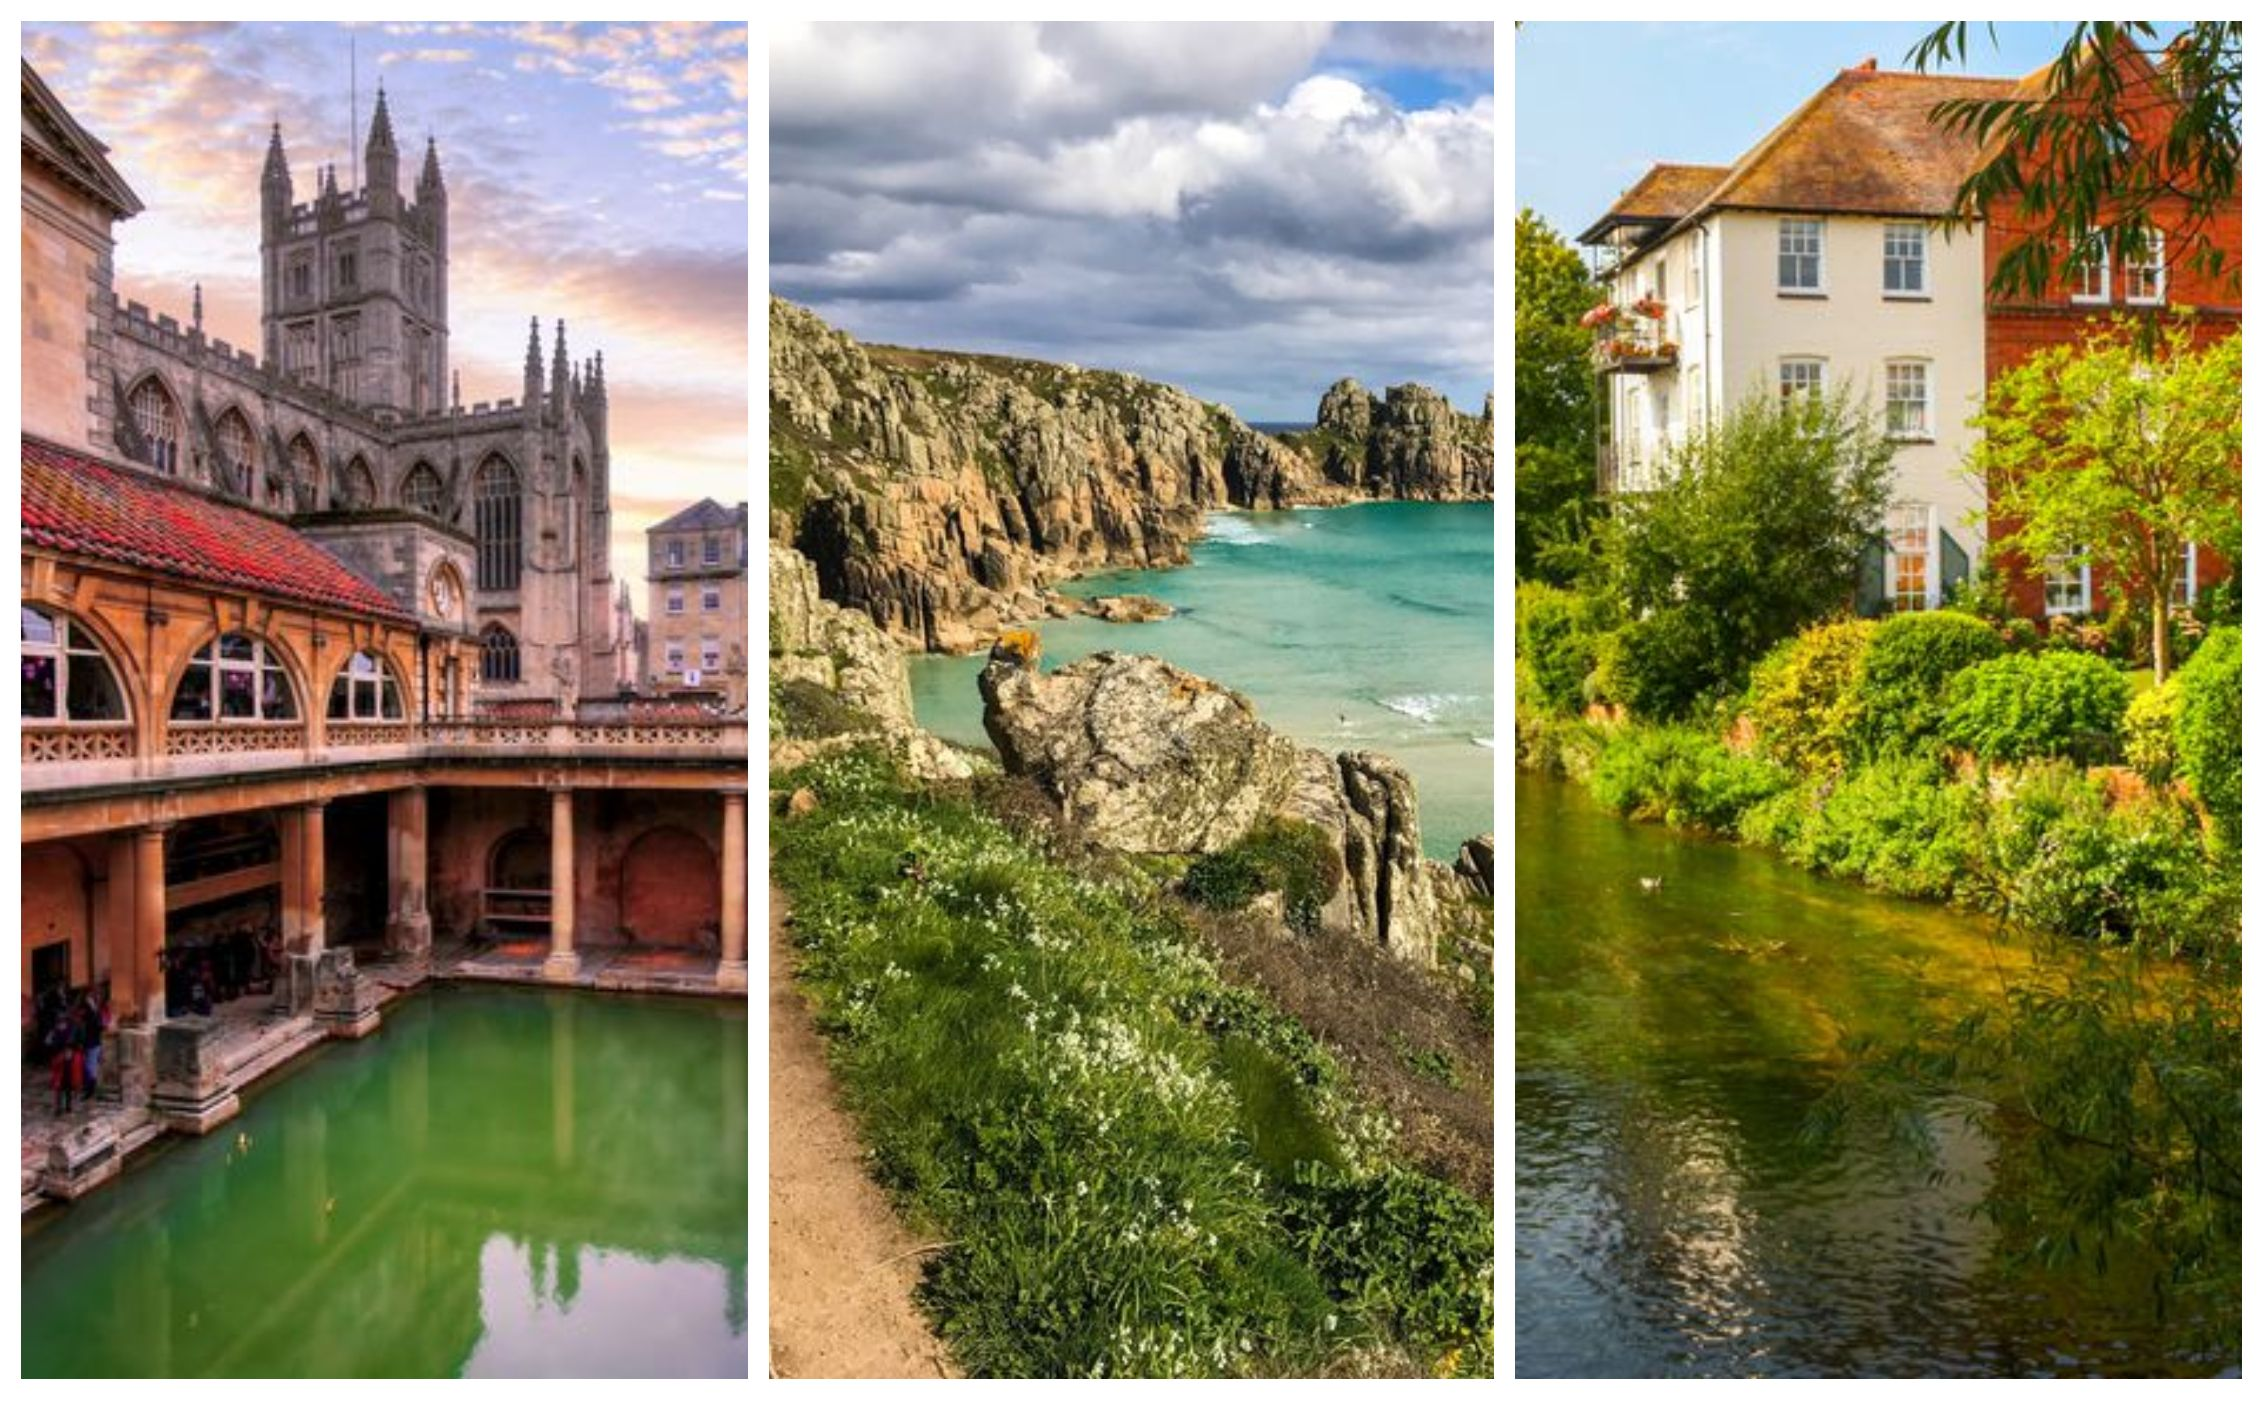 Quaint places to visit in england